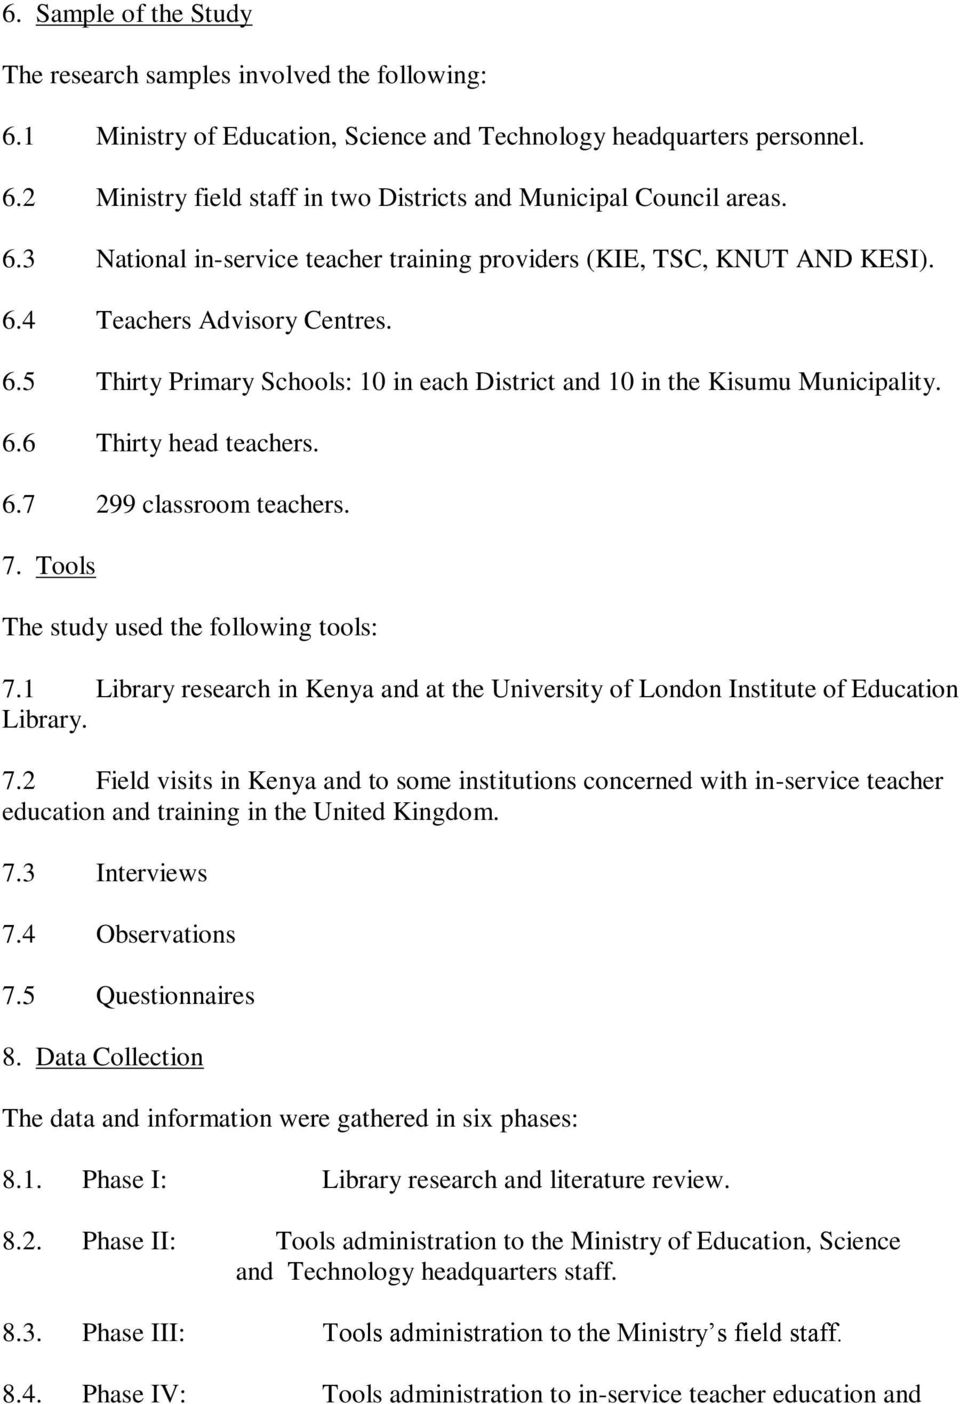 6.7 299 classroom teachers. 7. Tools The study used the following tools: 7.1 Library research in Kenya and at the University of London Institute of Education Library. 7.2 Field visits in Kenya and to some institutions concerned with in-service teacher education and training in the United Kingdom.